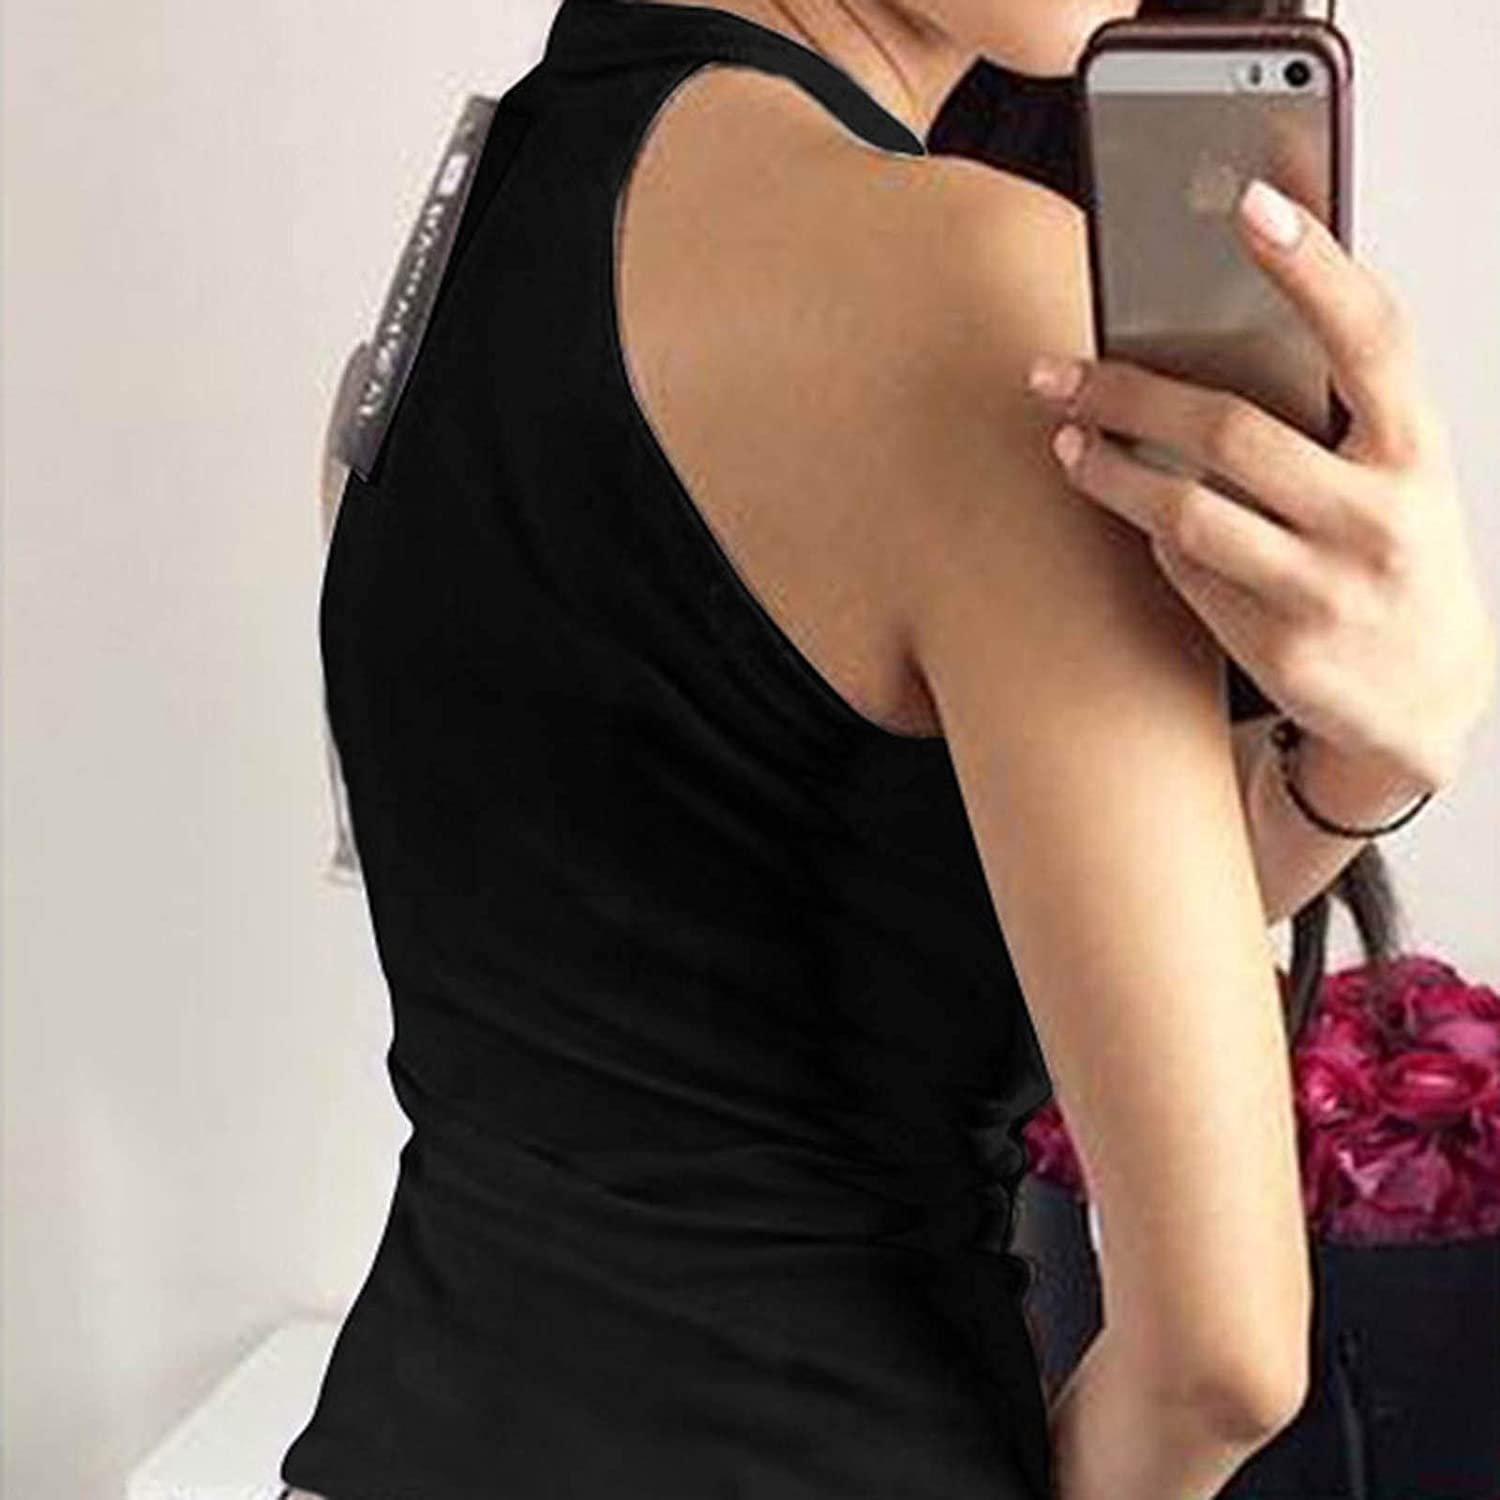 Women Cami Tops, Womens Sexy Tank Tops Lace Up Sleeveless Tees Shirt Casual Slim Fit Camisole Cami Shirts